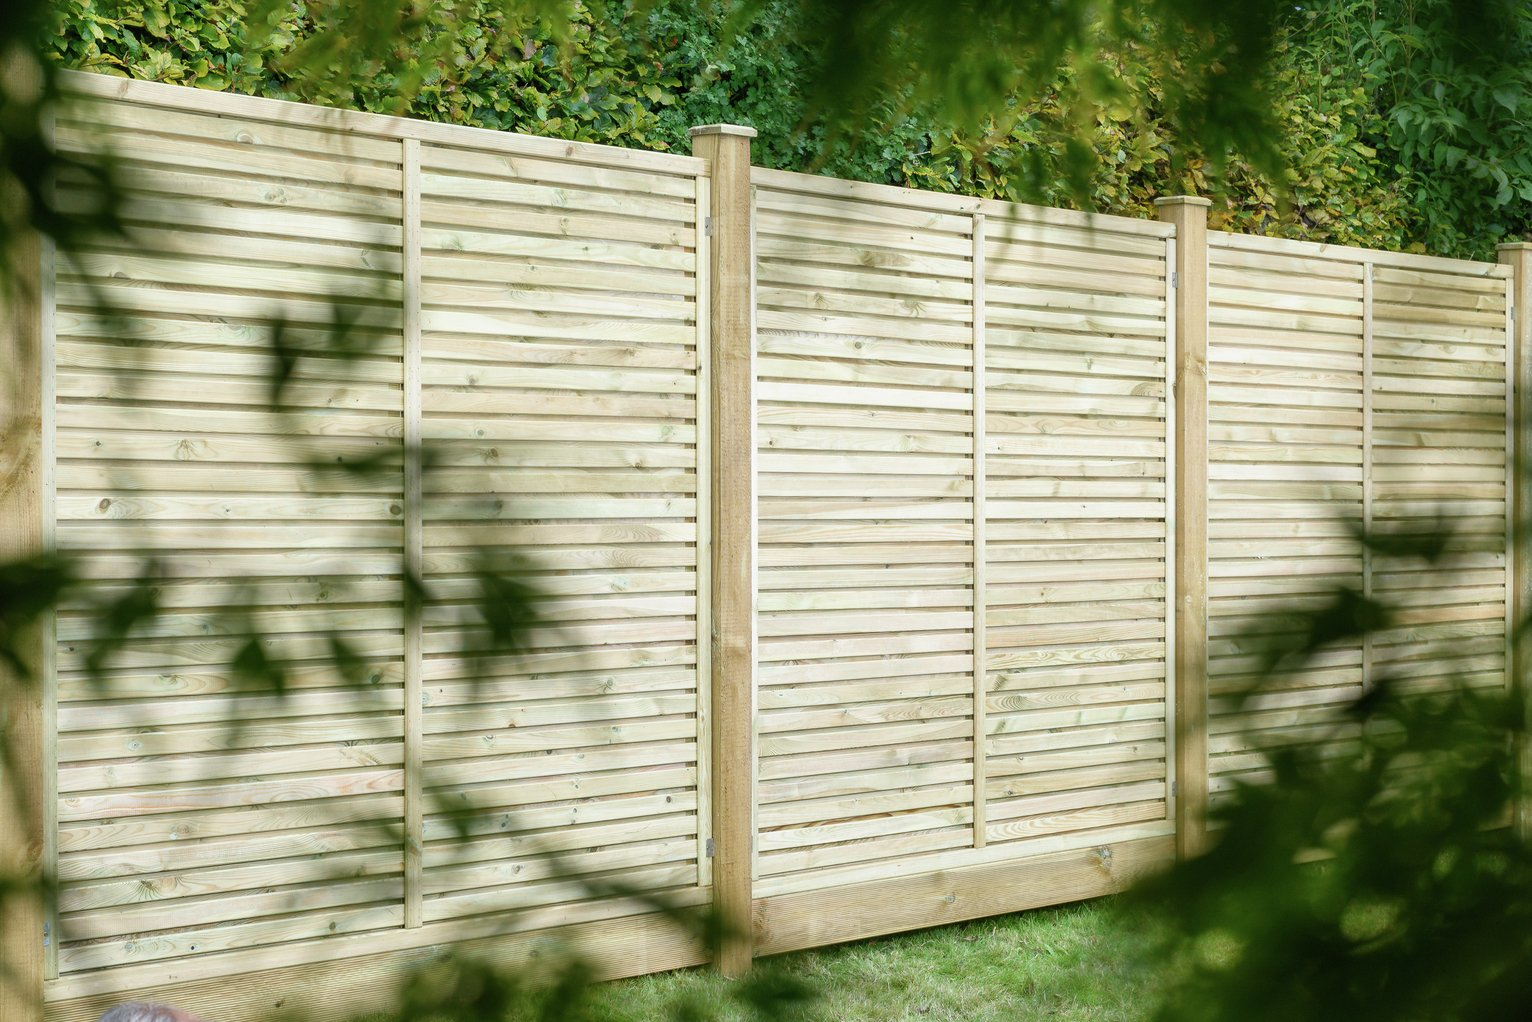 Grange Fencing Contemporary Vogue Panel 1.8m - Pack of 3